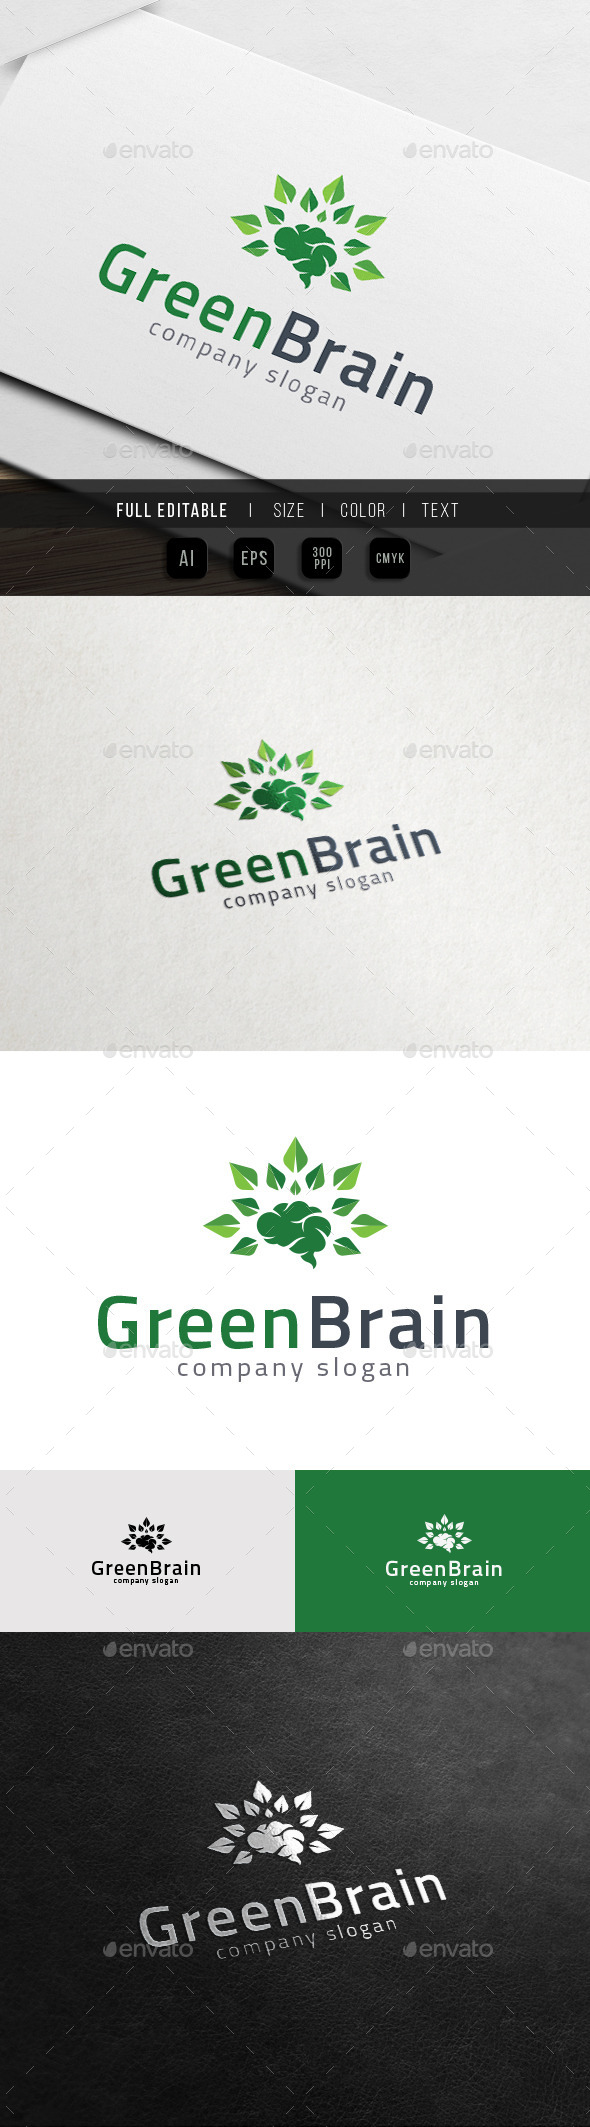 Big Thinker - Green Brain - Nature Knowledge Logo - Objects Logo Templates